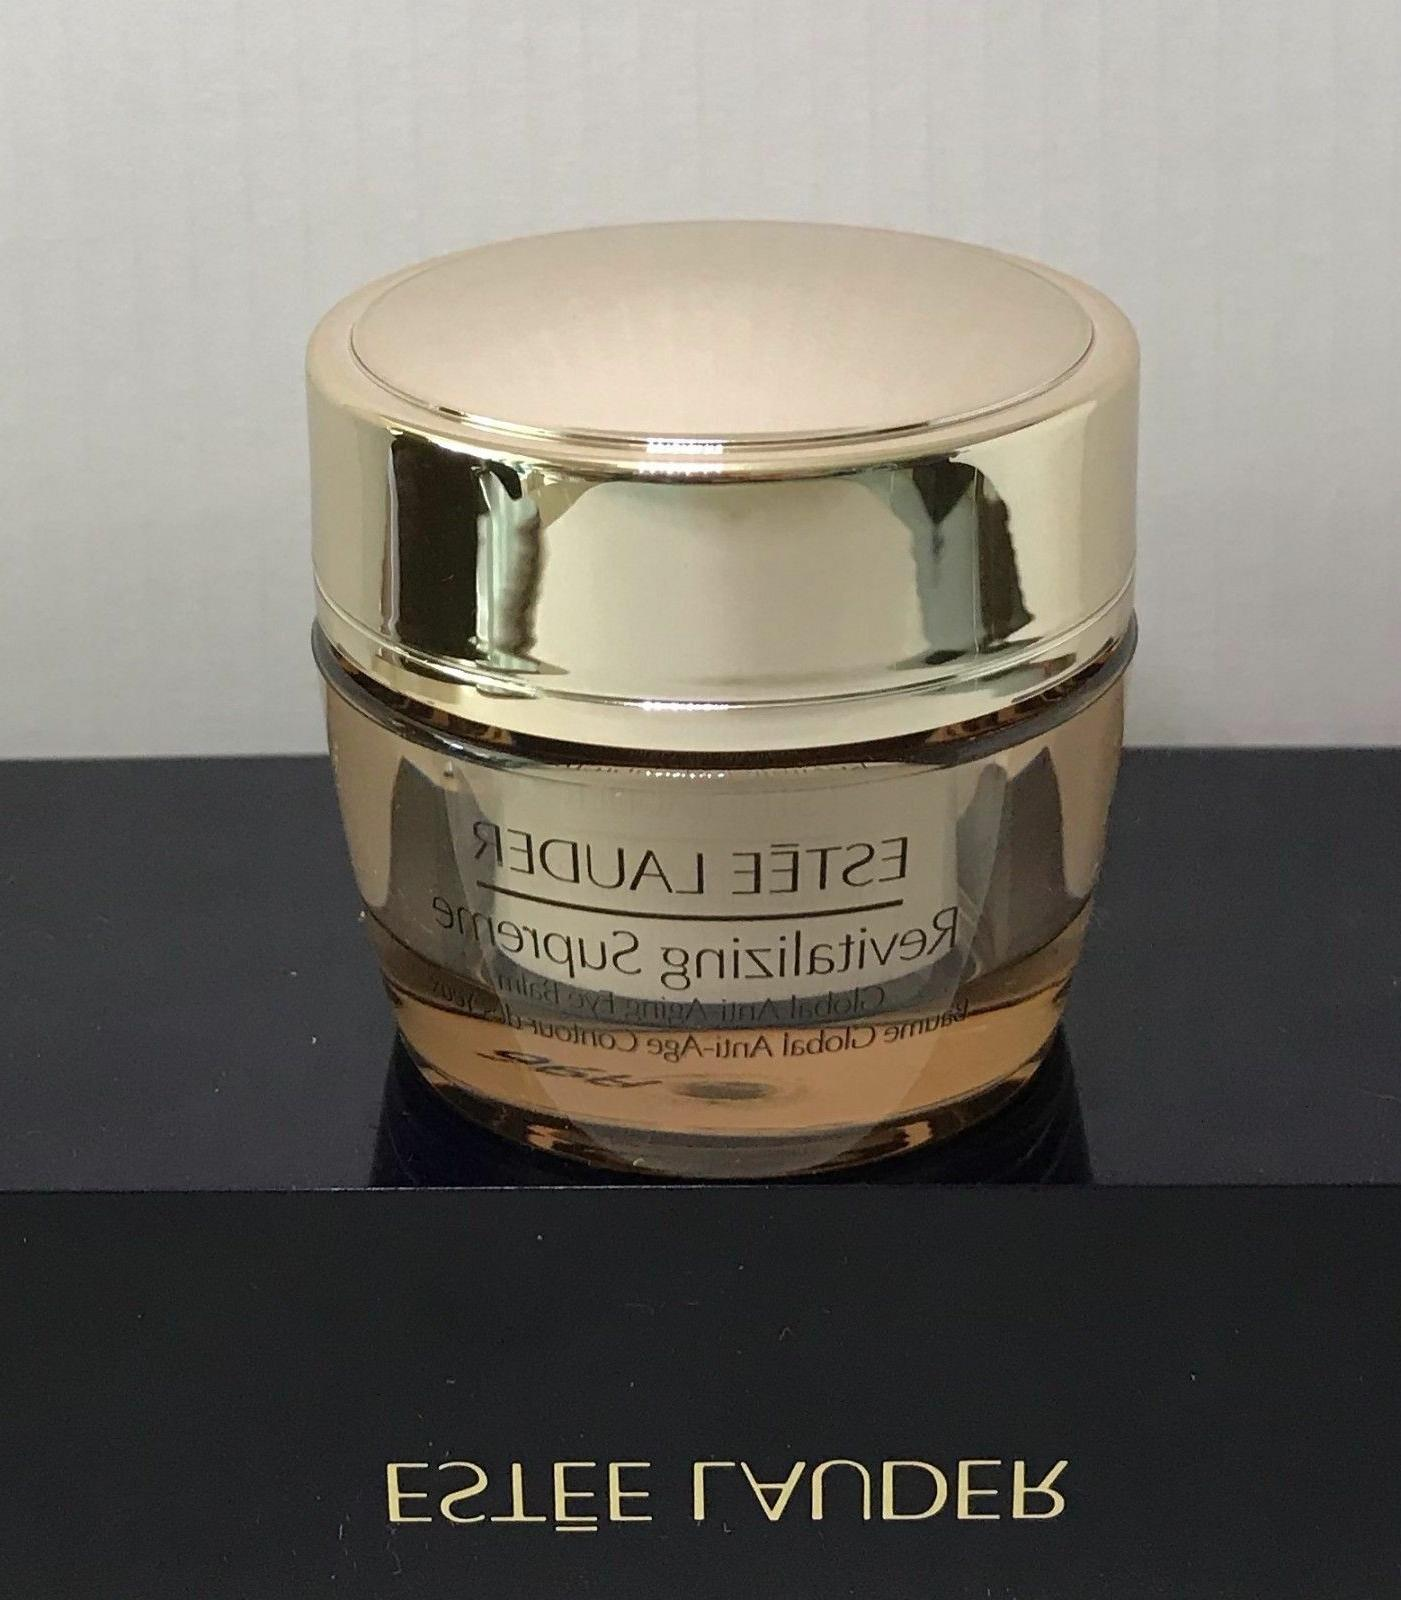 Estee Lauder Revitalizing Supreme Global Anti Aging Eye Crem